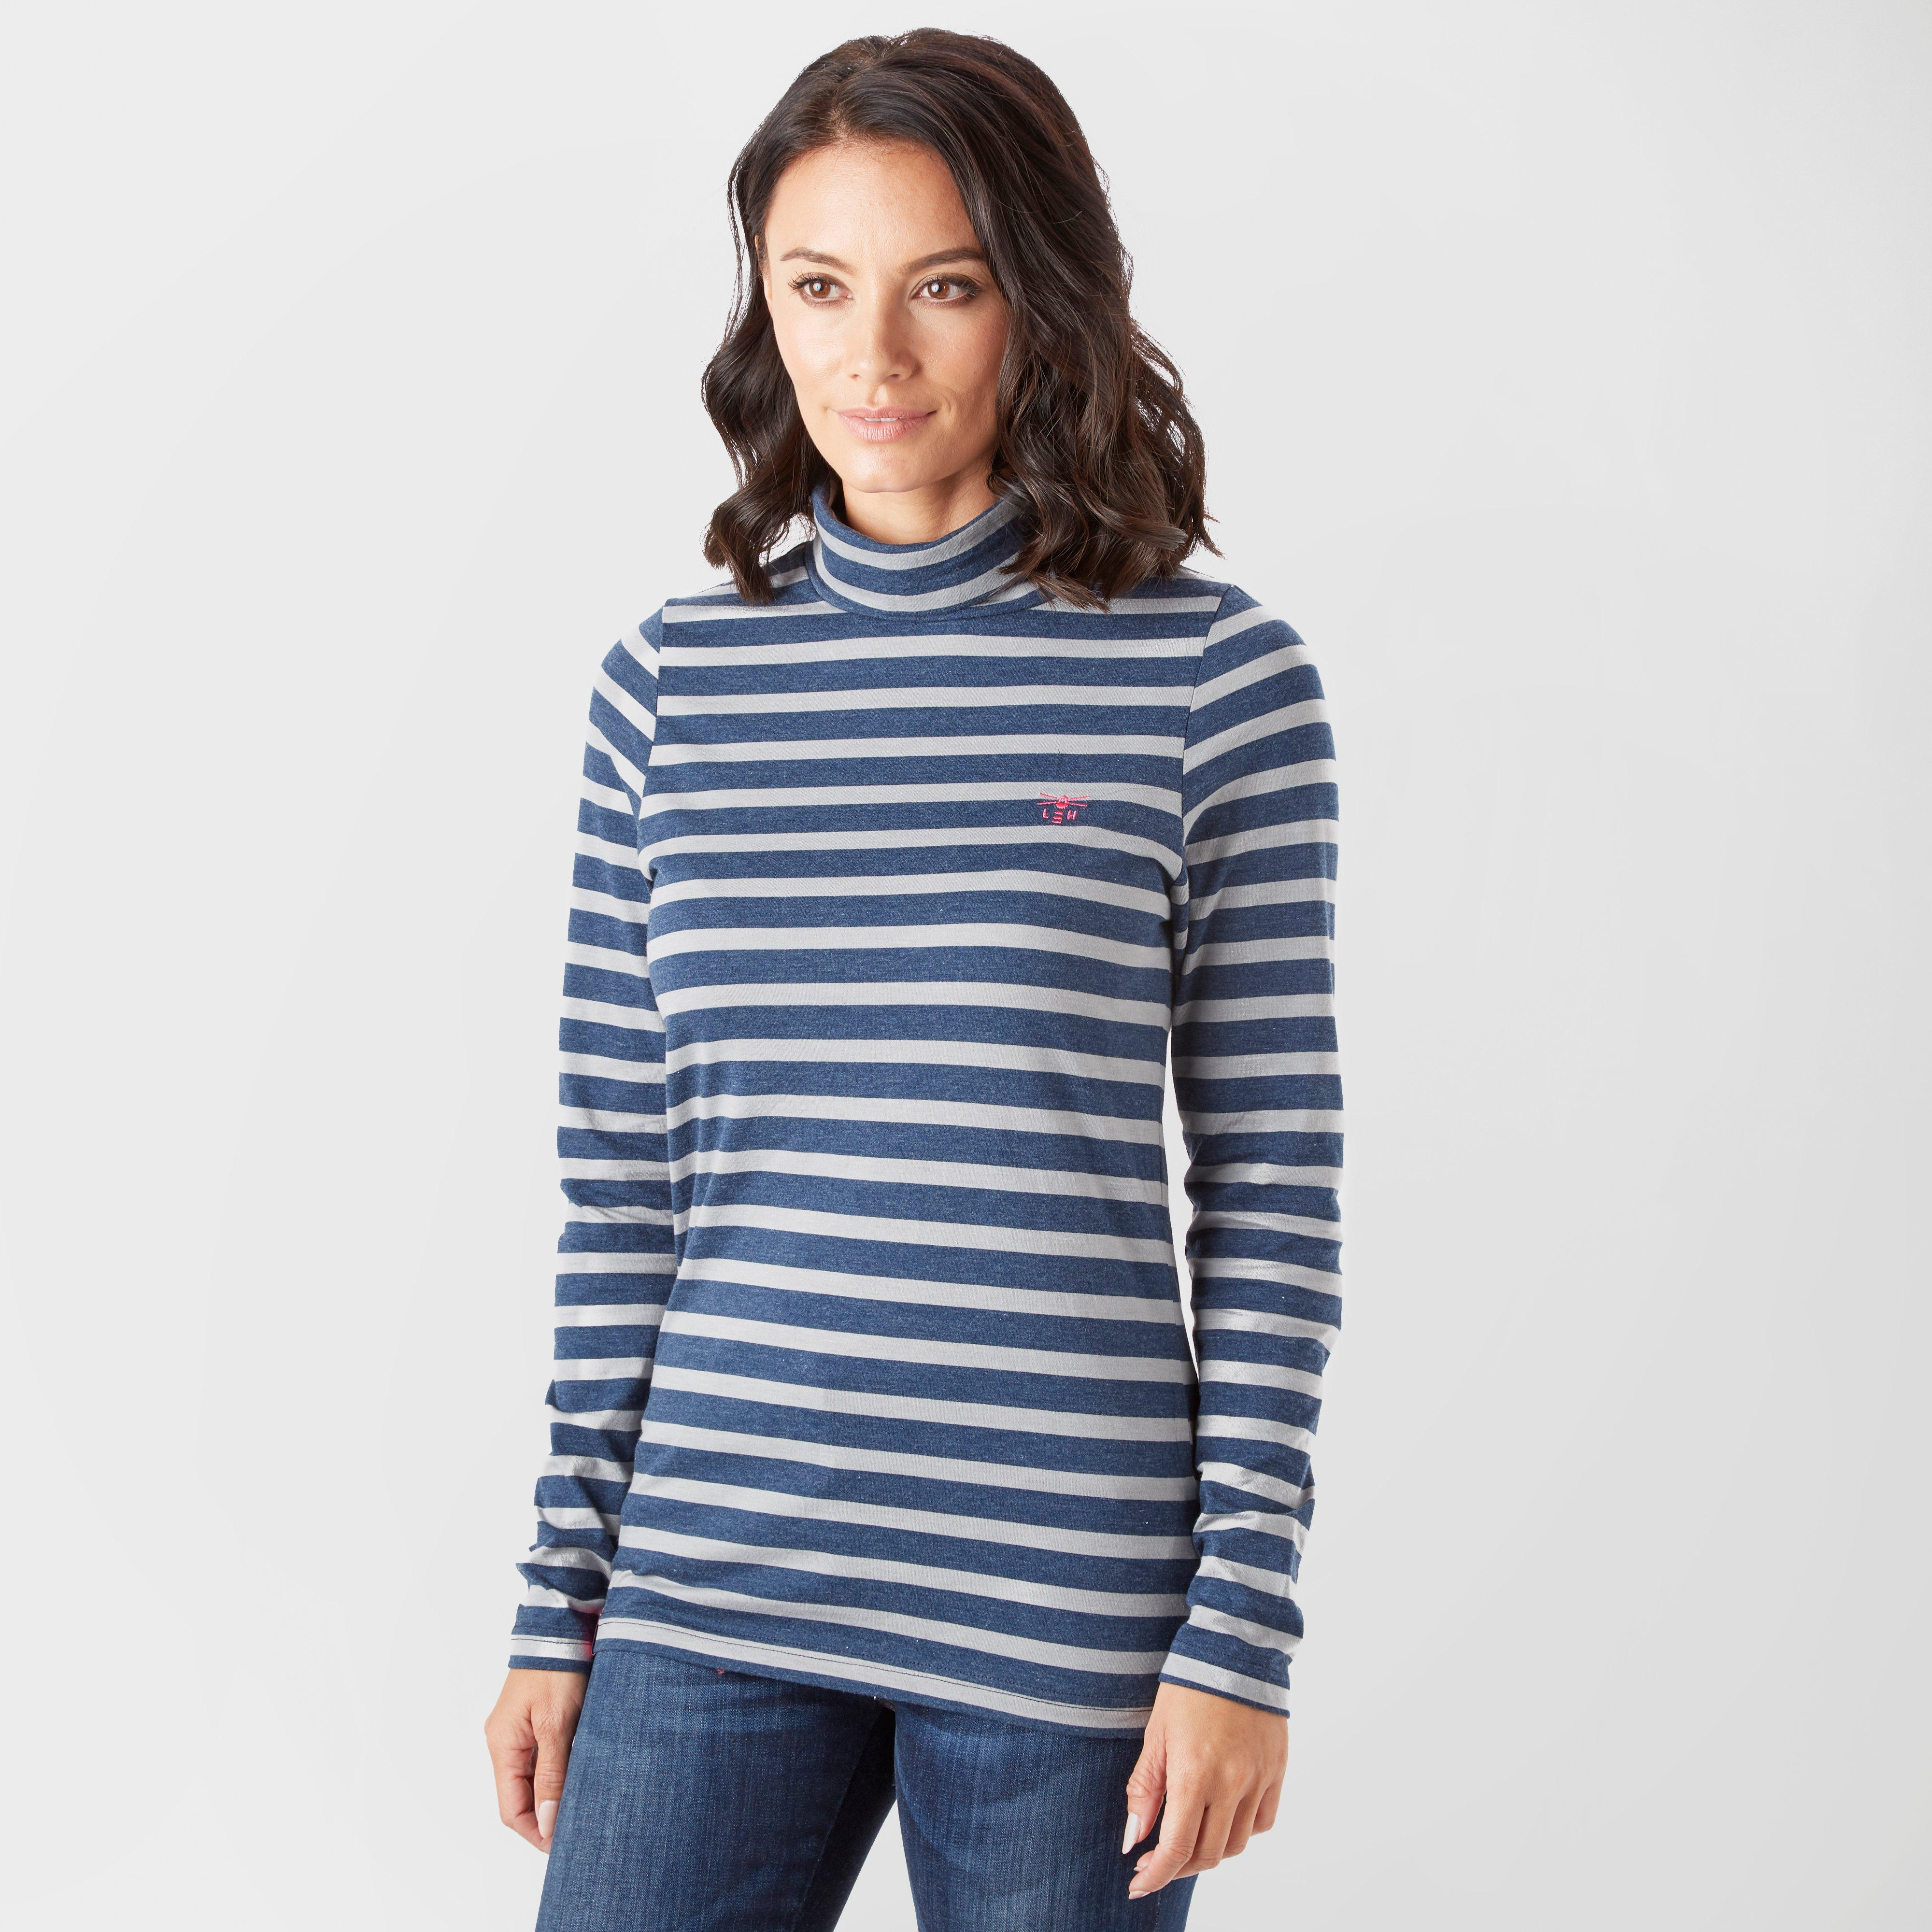 Lighthouse Women's Piper Turtleneck, Navy